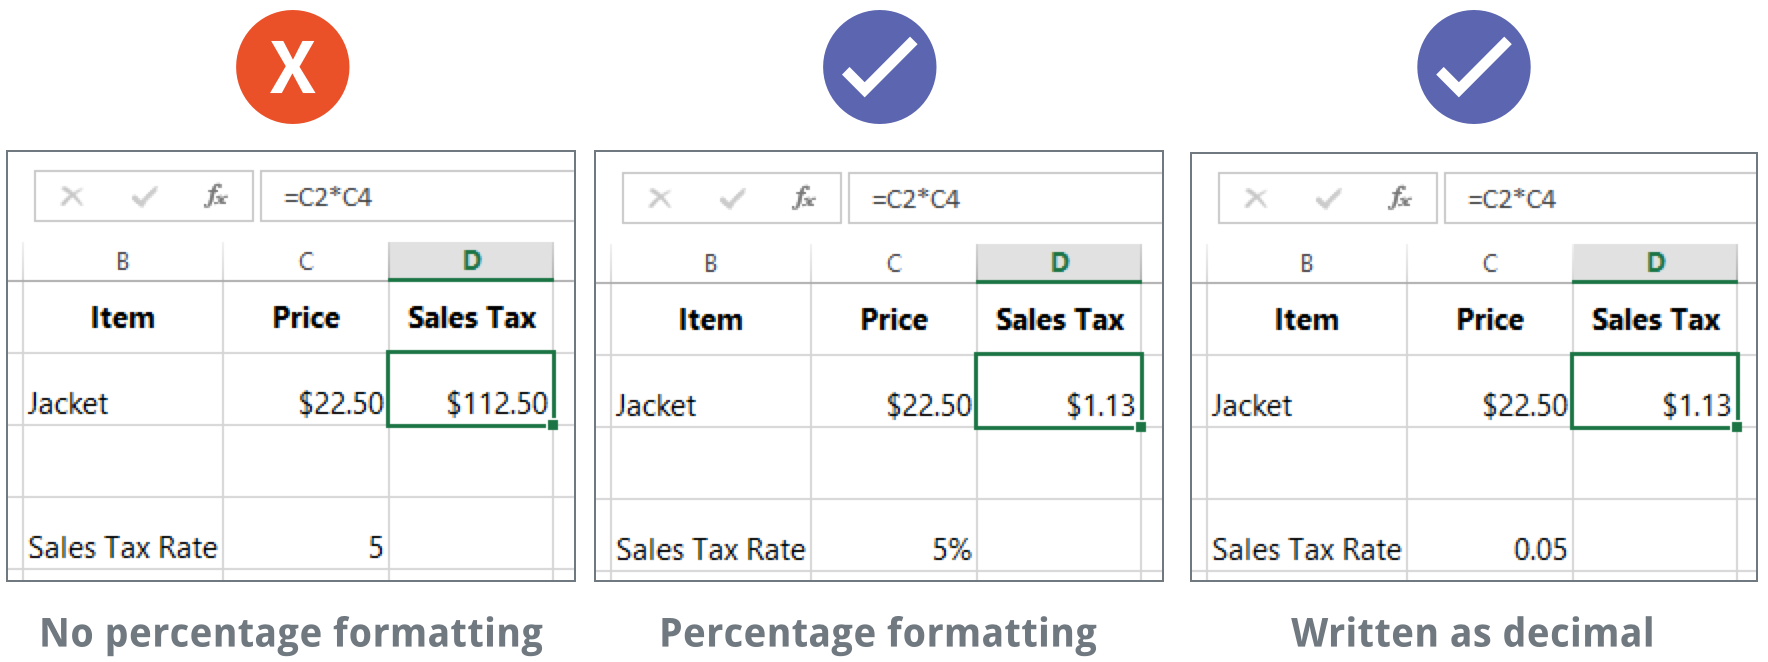 image showing correct and incorrect calculations based on percentage formatting